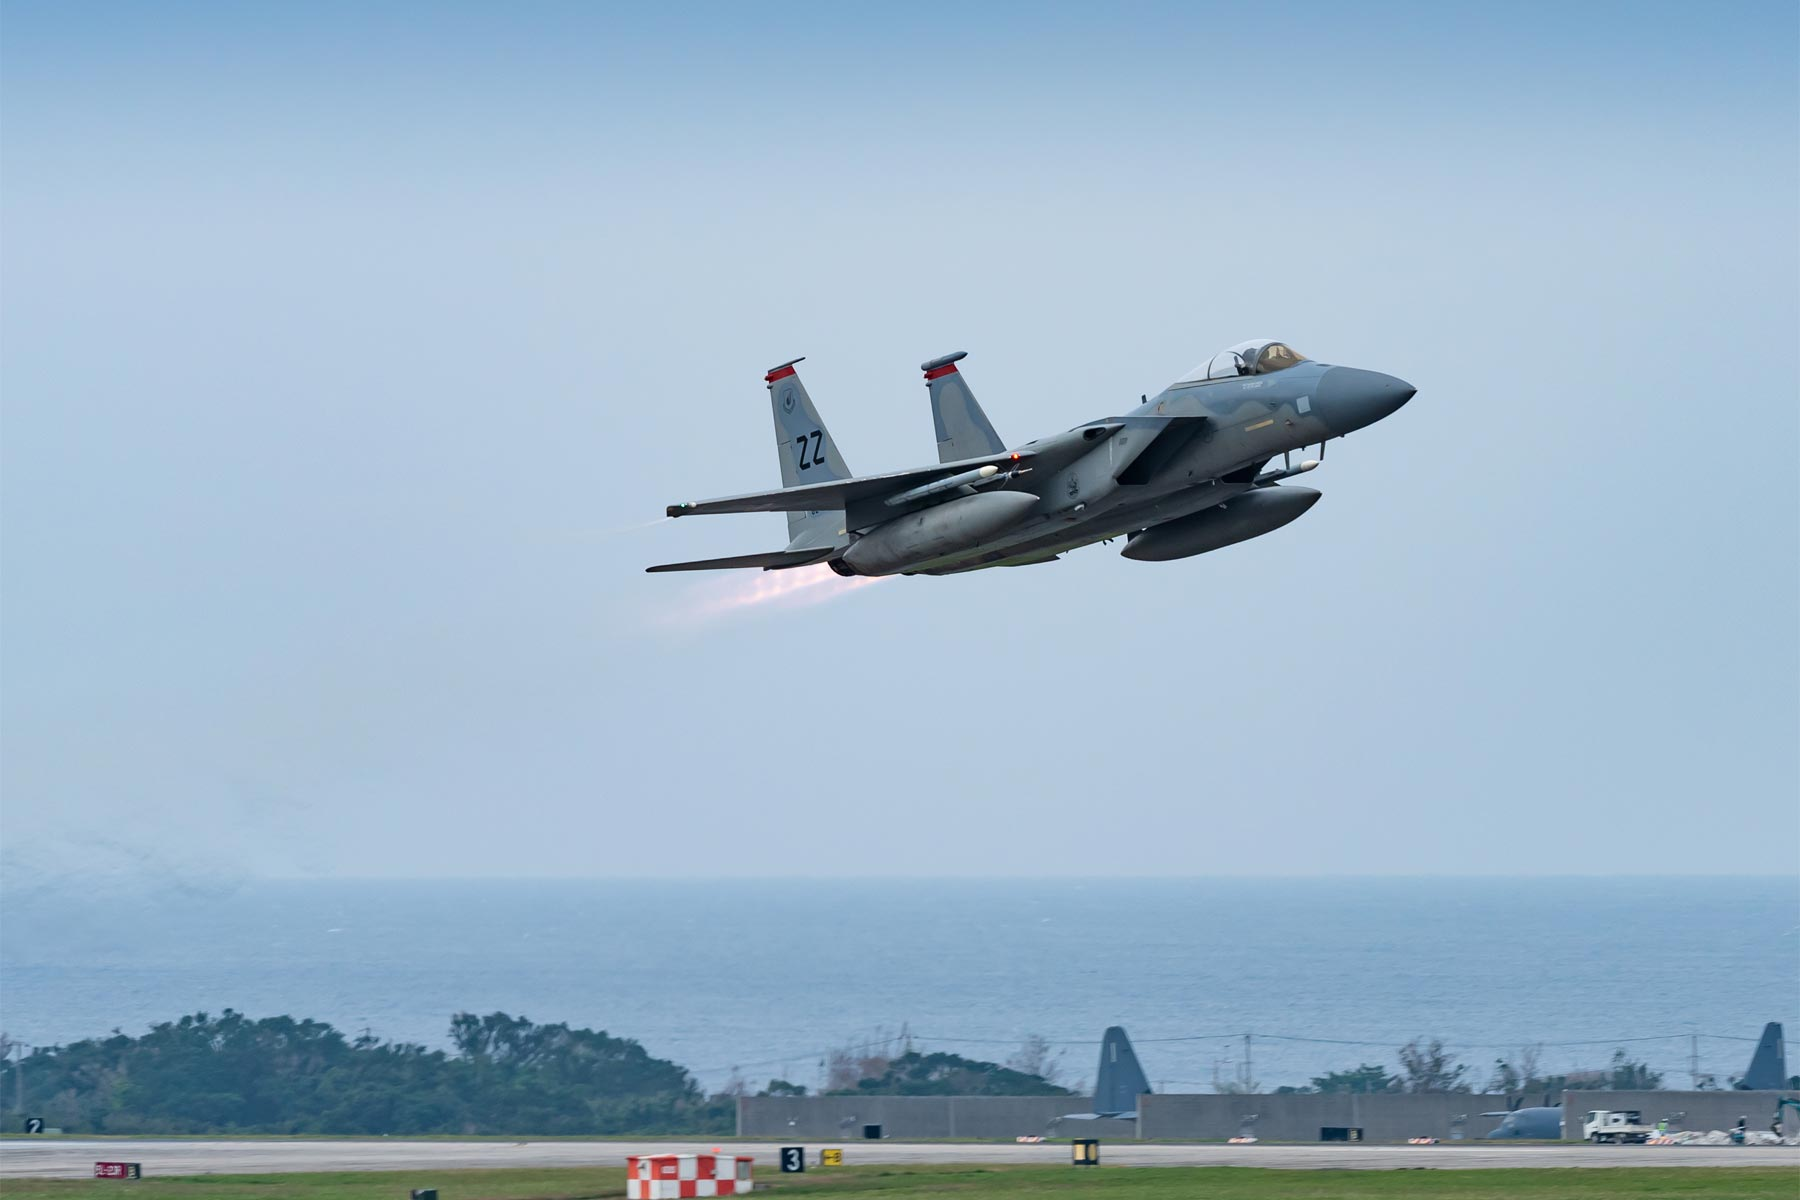 Hackers Find Serious Vulnerabilities in an F-15 Fighter Jet System